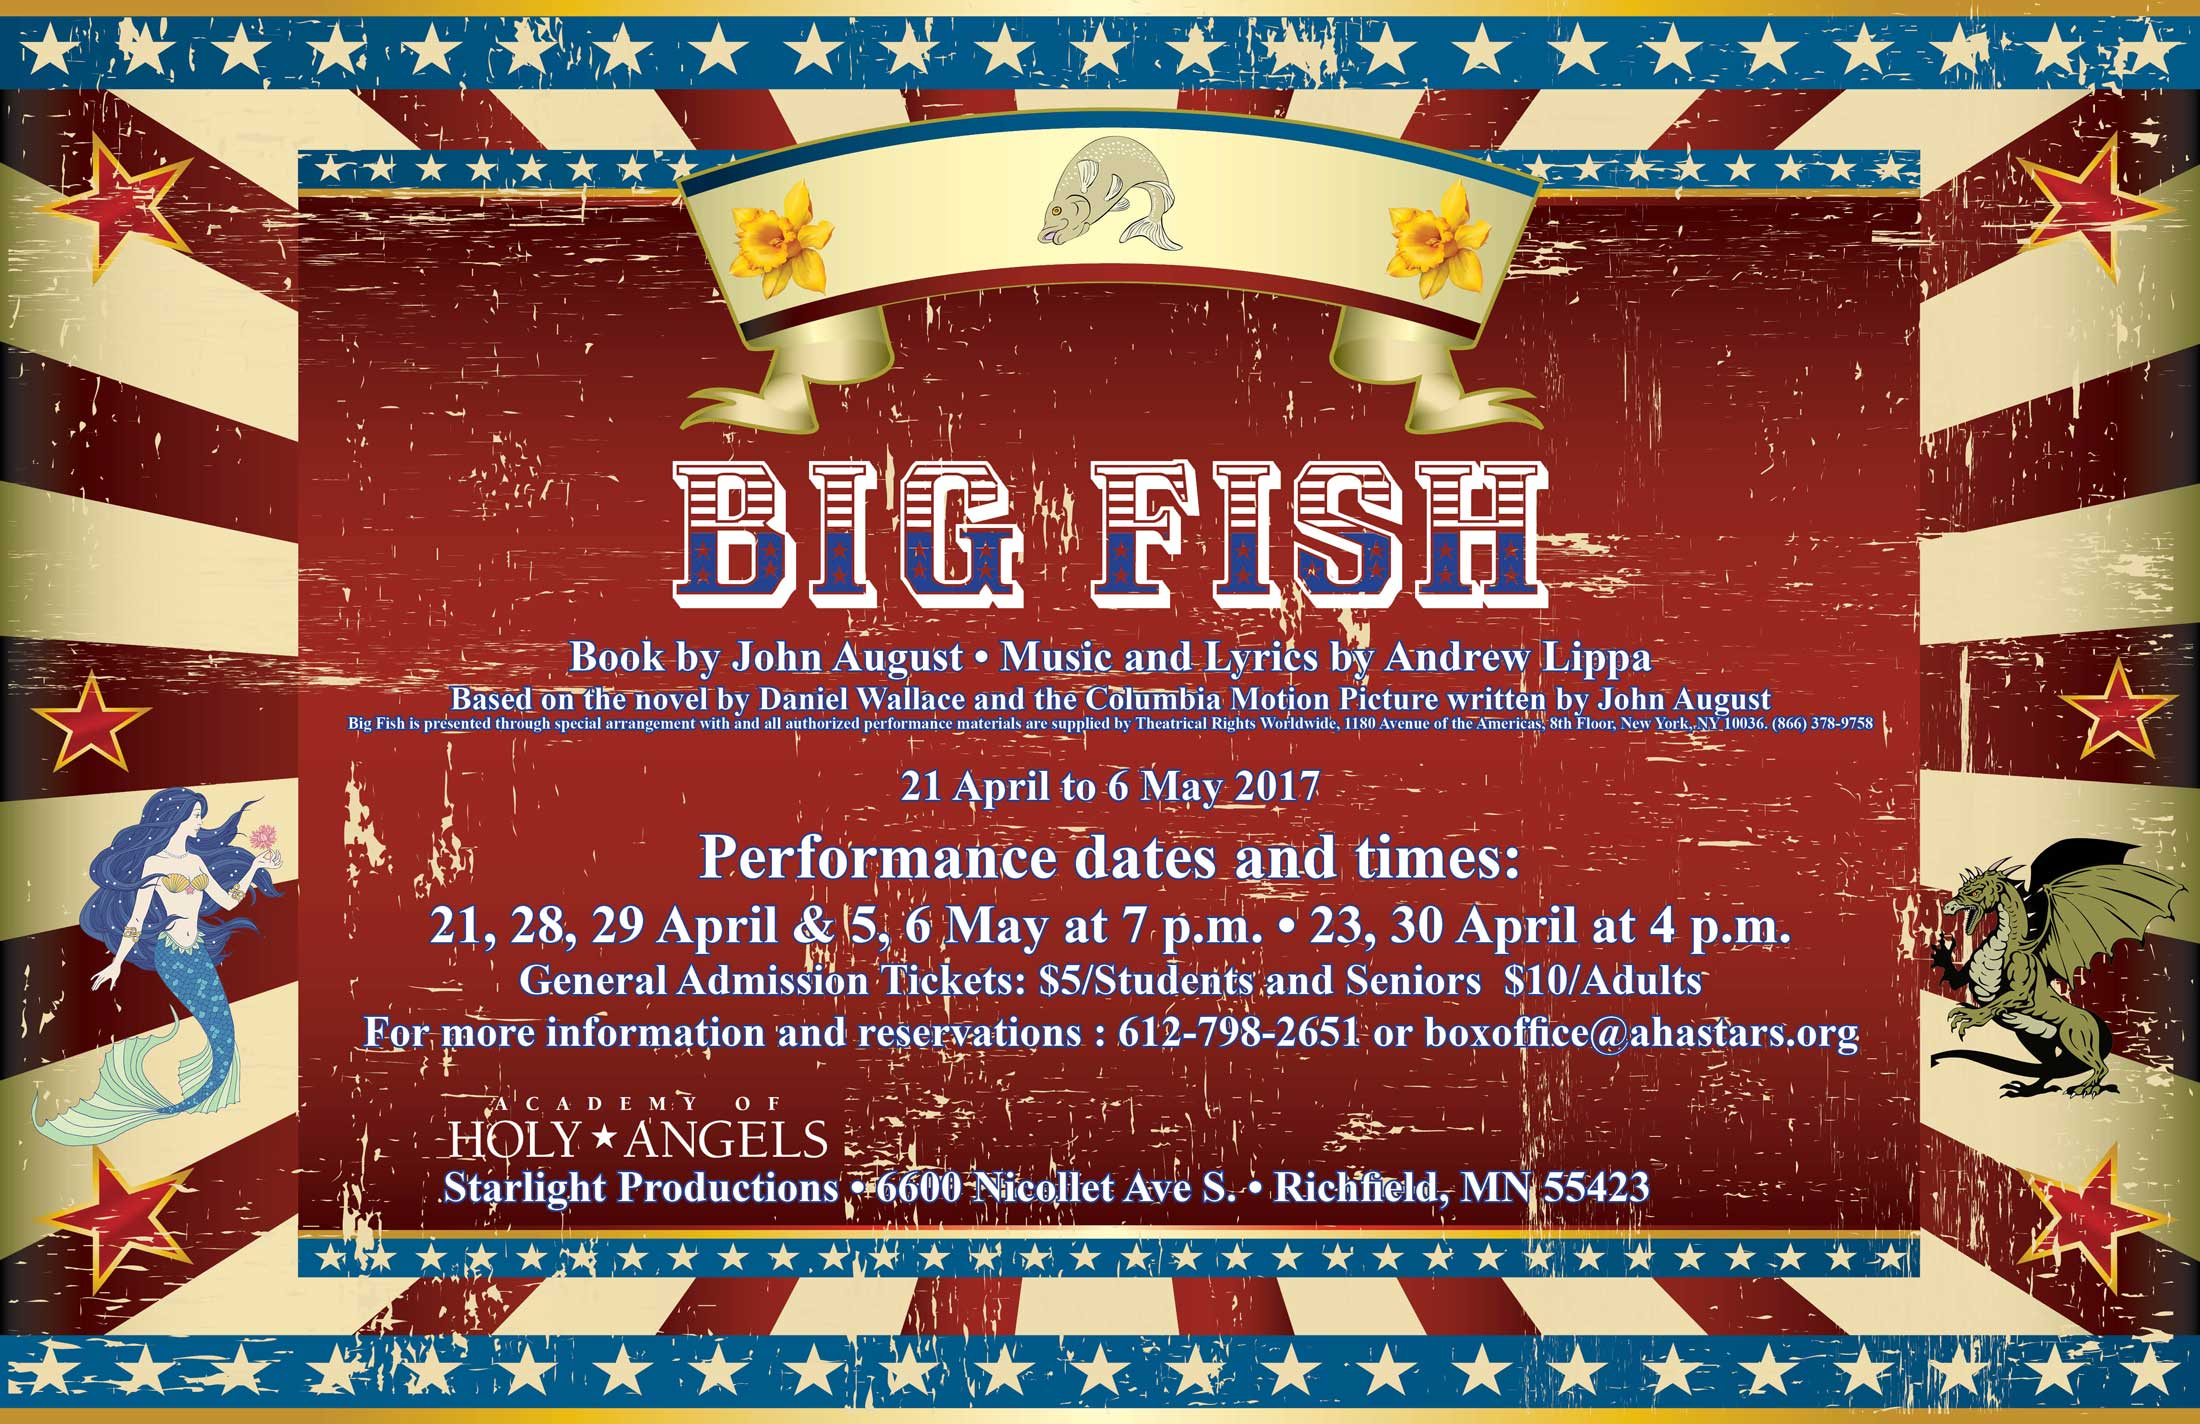 Big Fish opens April 21st